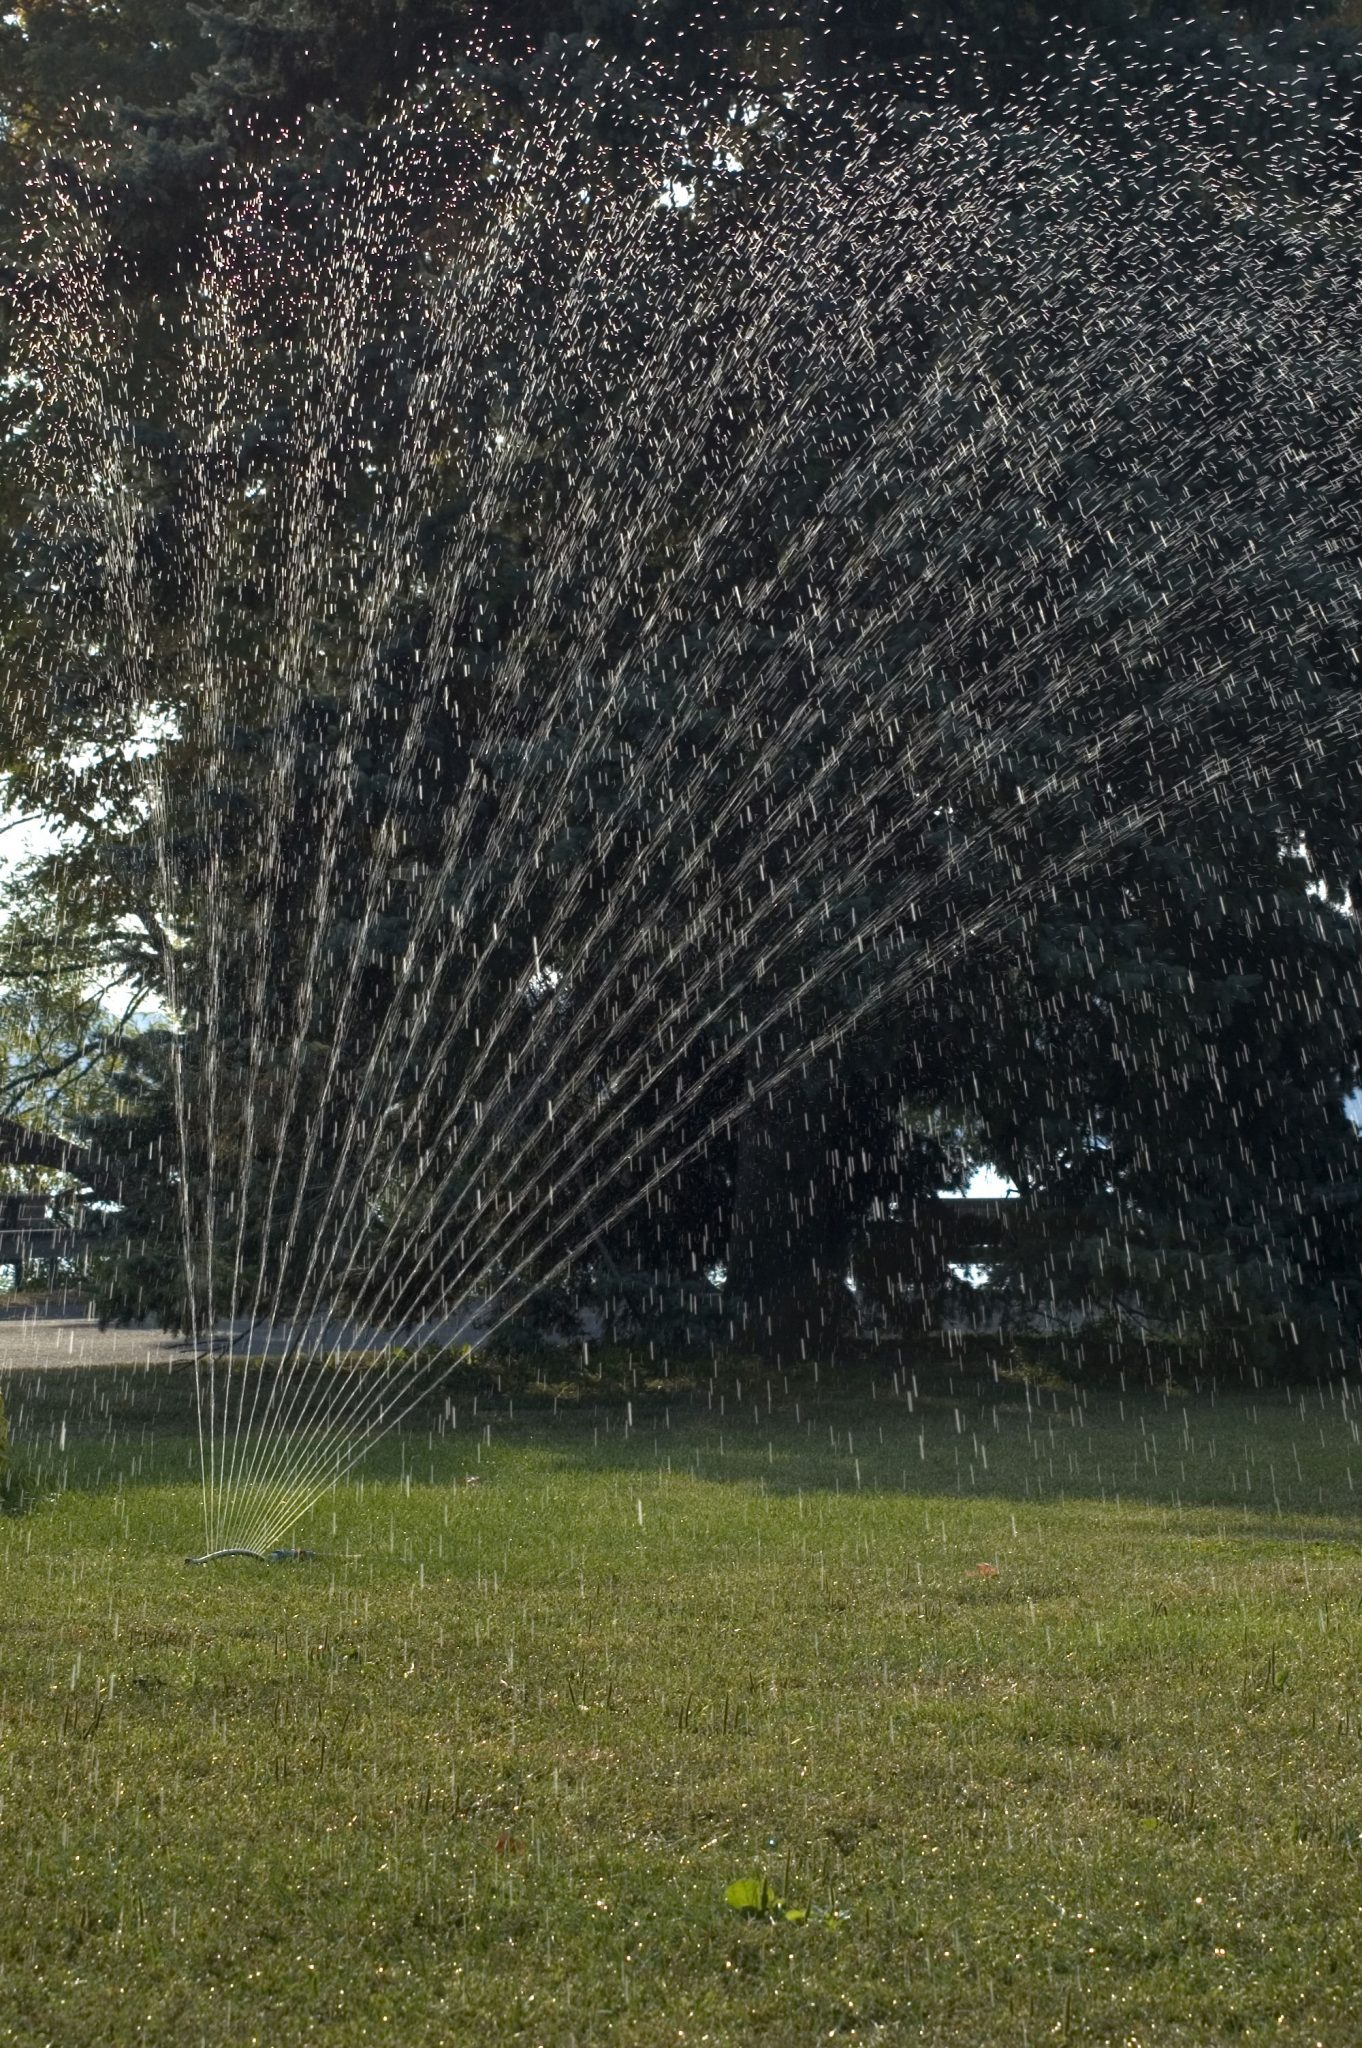 Ways to save water: Reduce Lawn Irrigation to Save Water